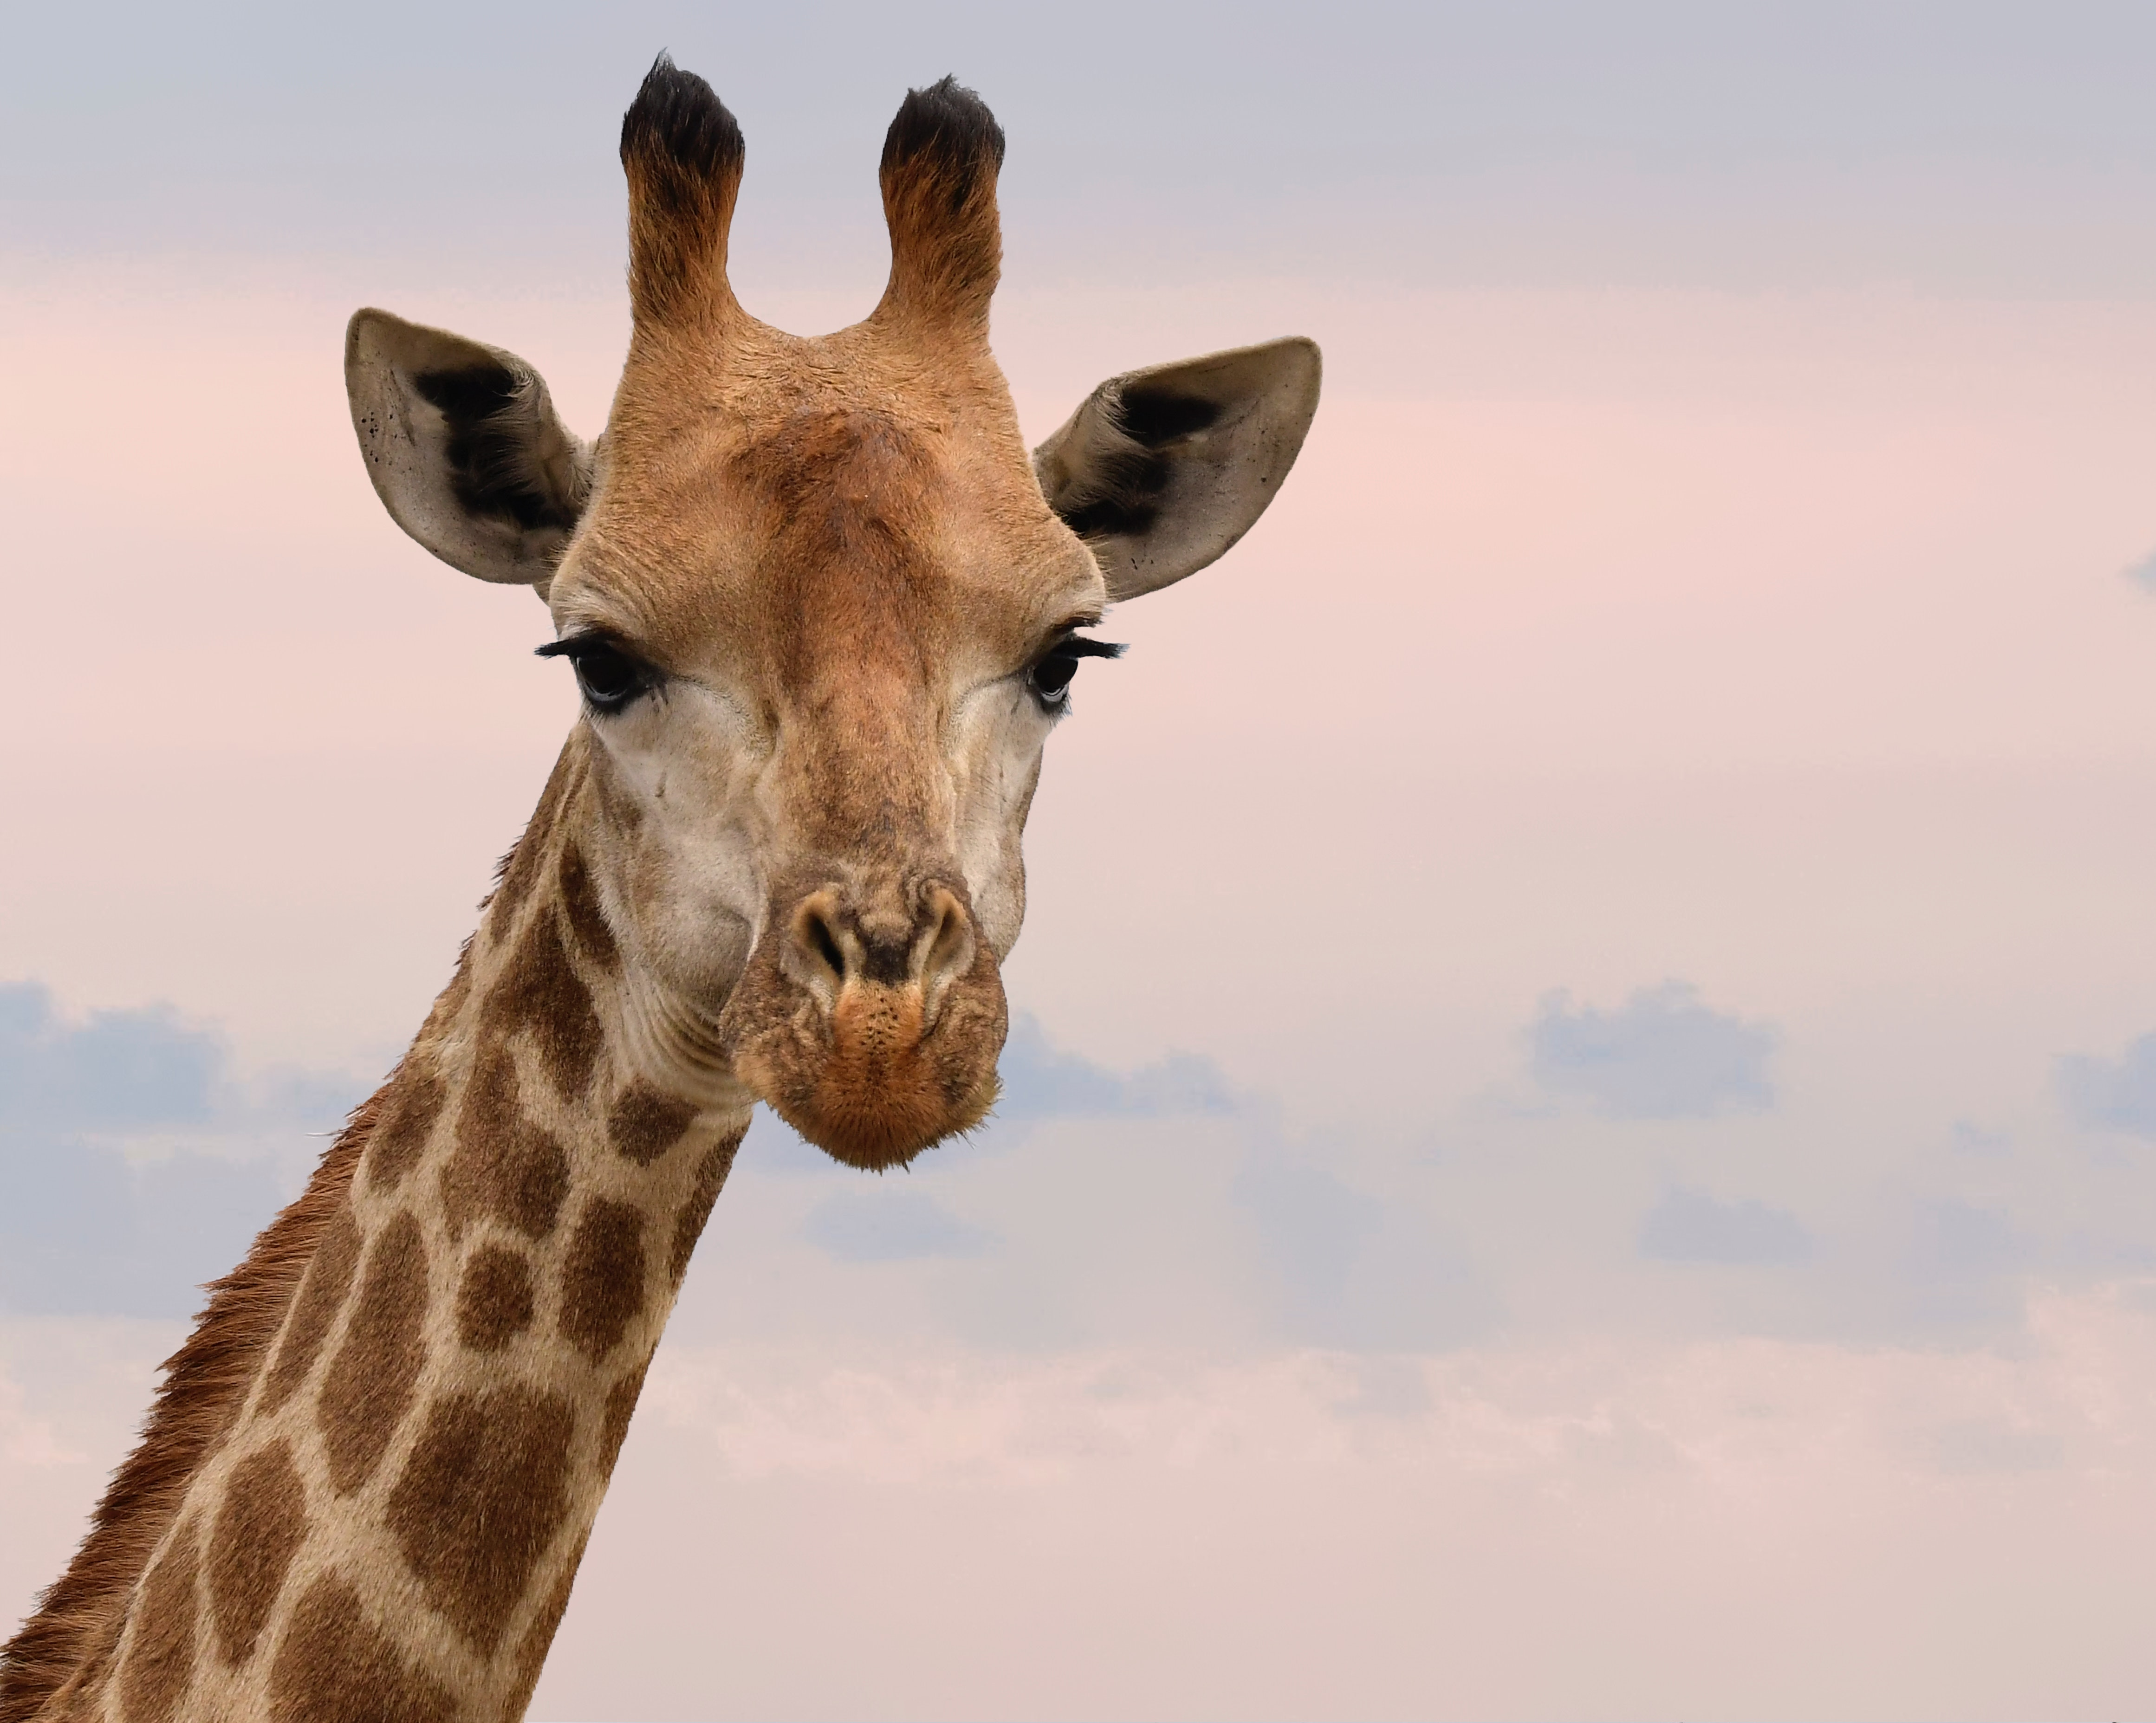 Close-Up Photography of Giraffe, Animal, Long neck, Wild animal, Sky, HQ Photo